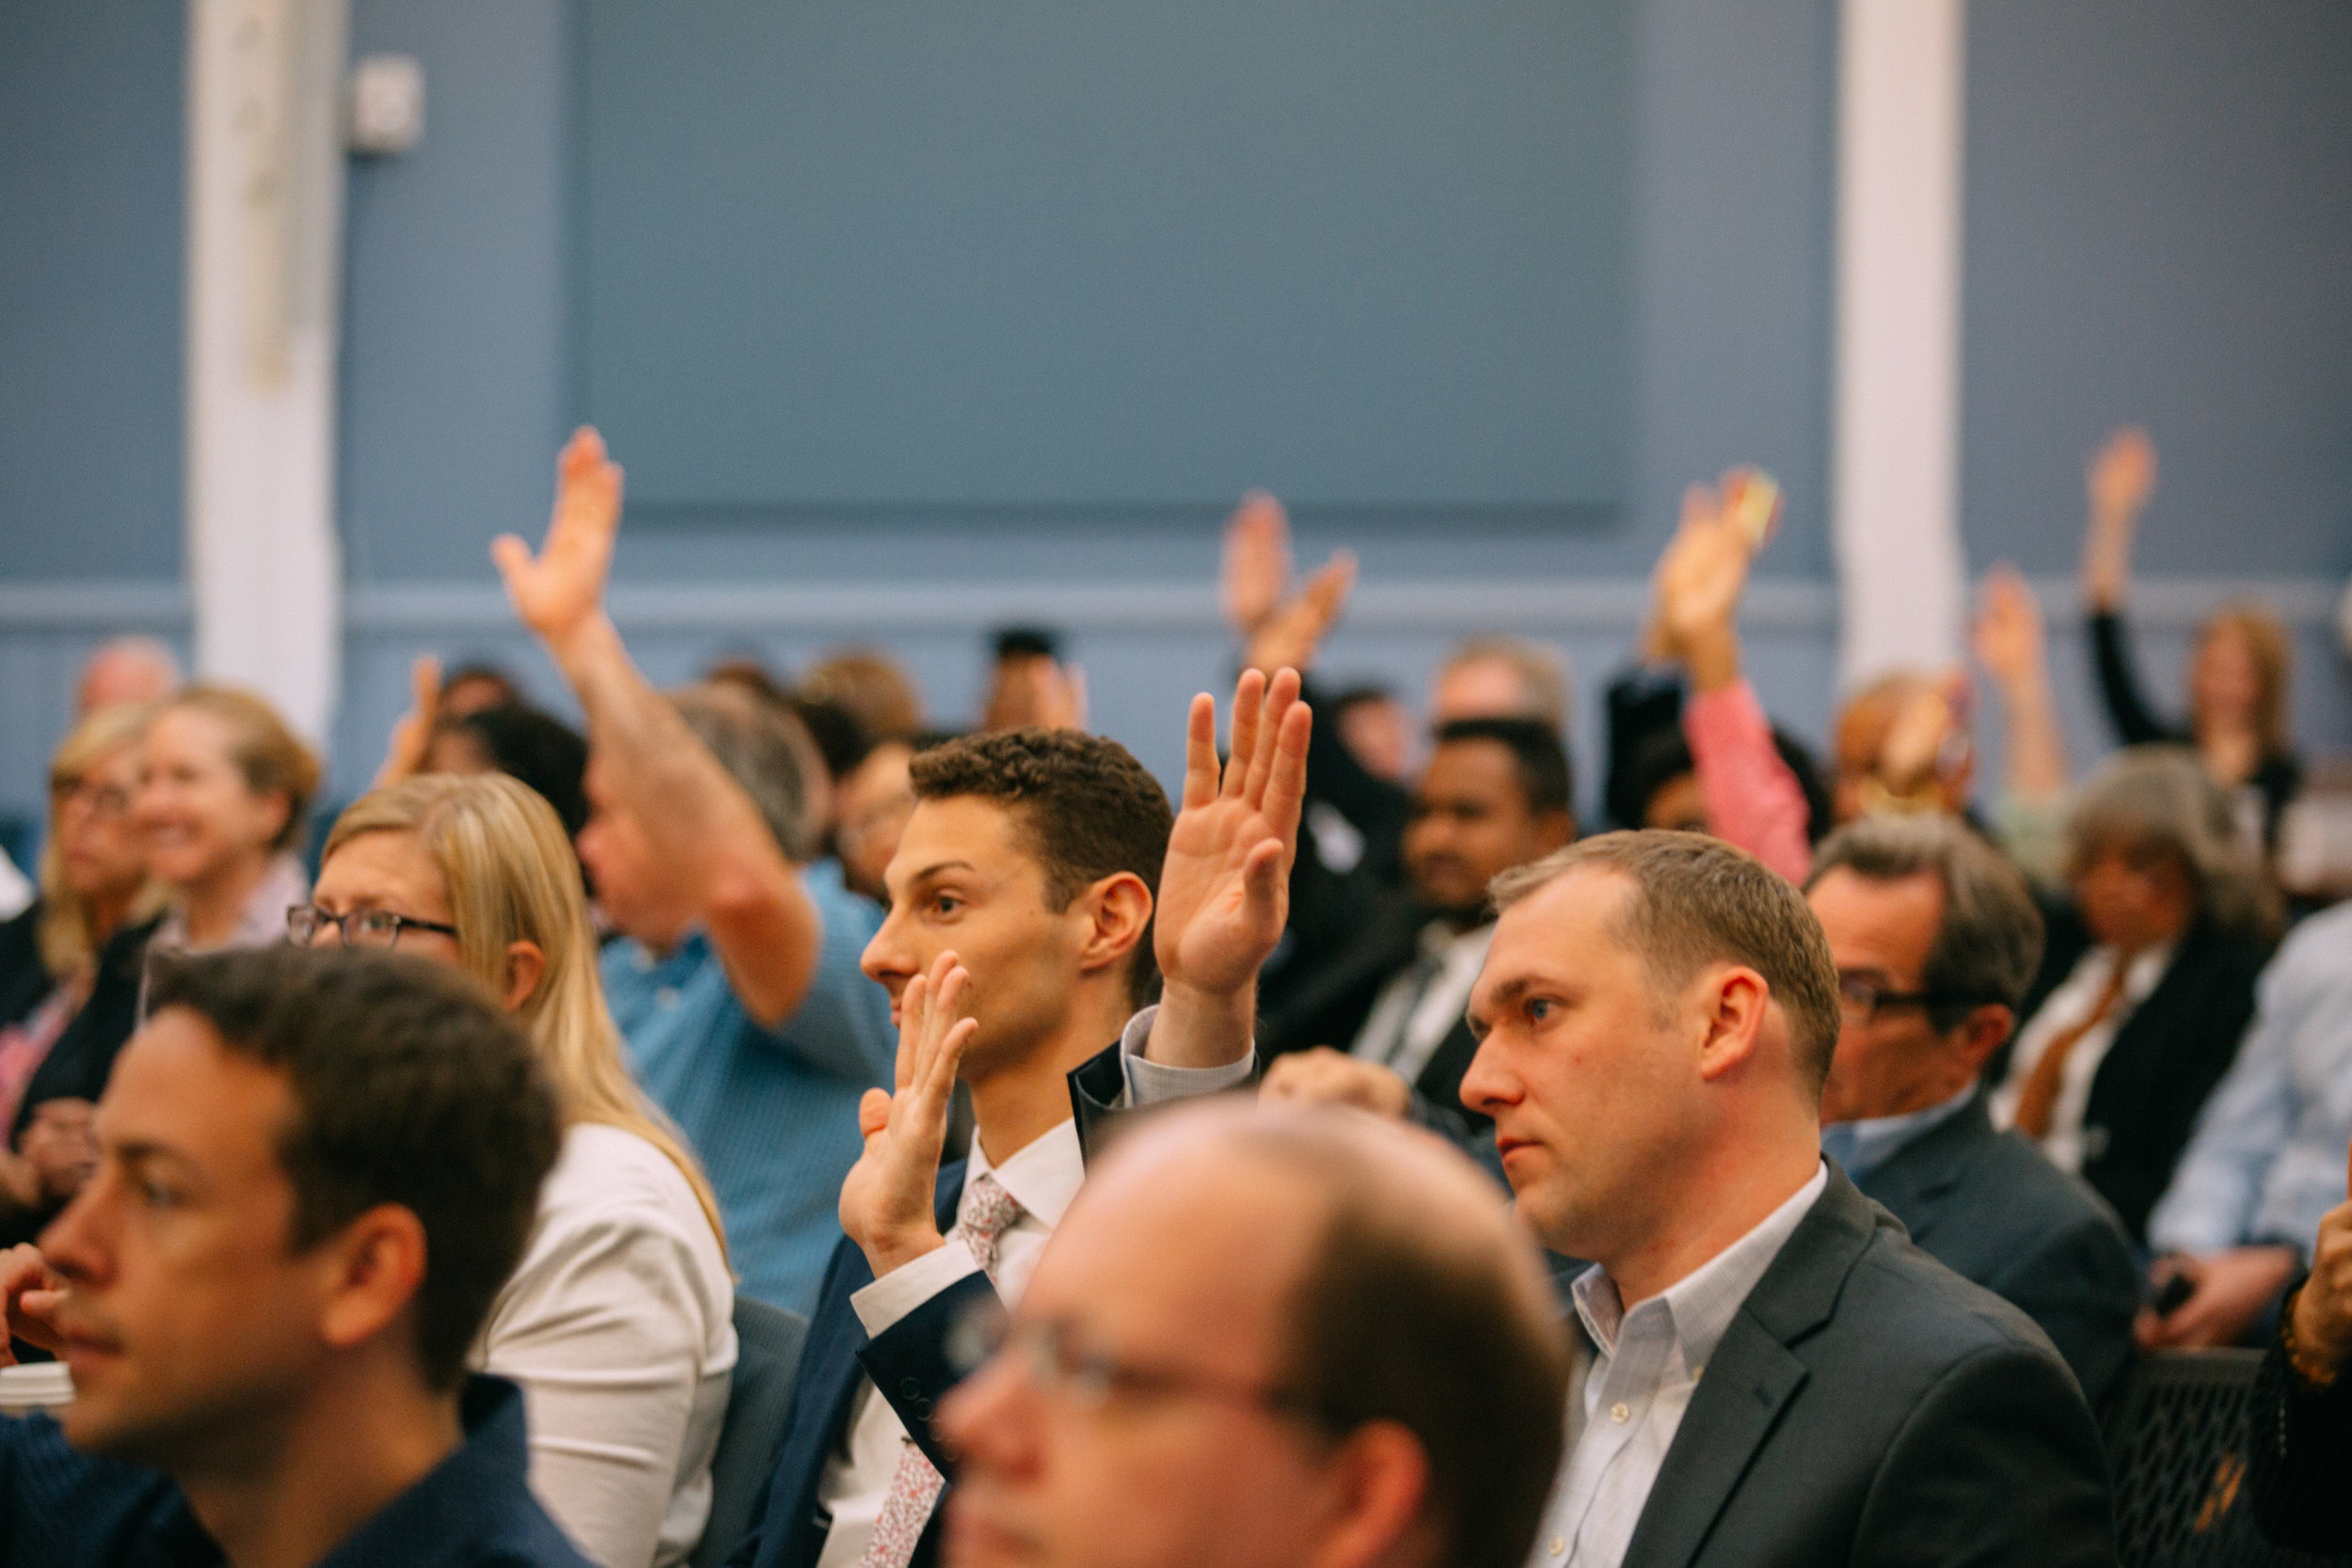 Over 250 guests convened at the second annual Smart Cincy Summit